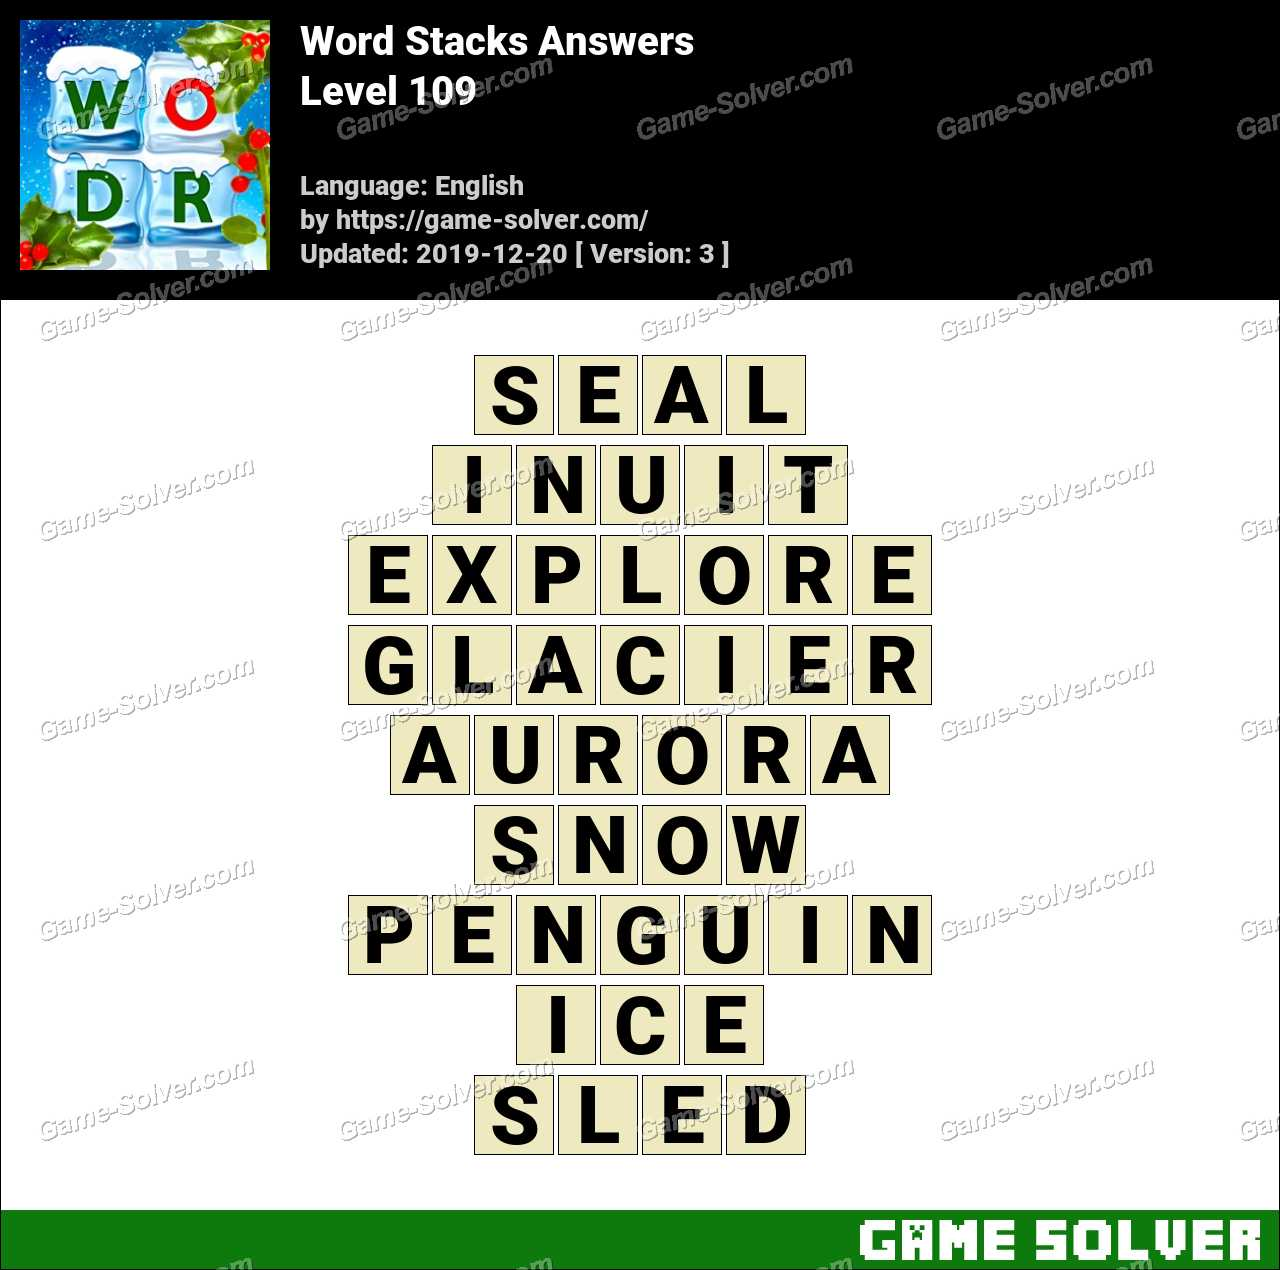 Word Stacks Level 109 Answers